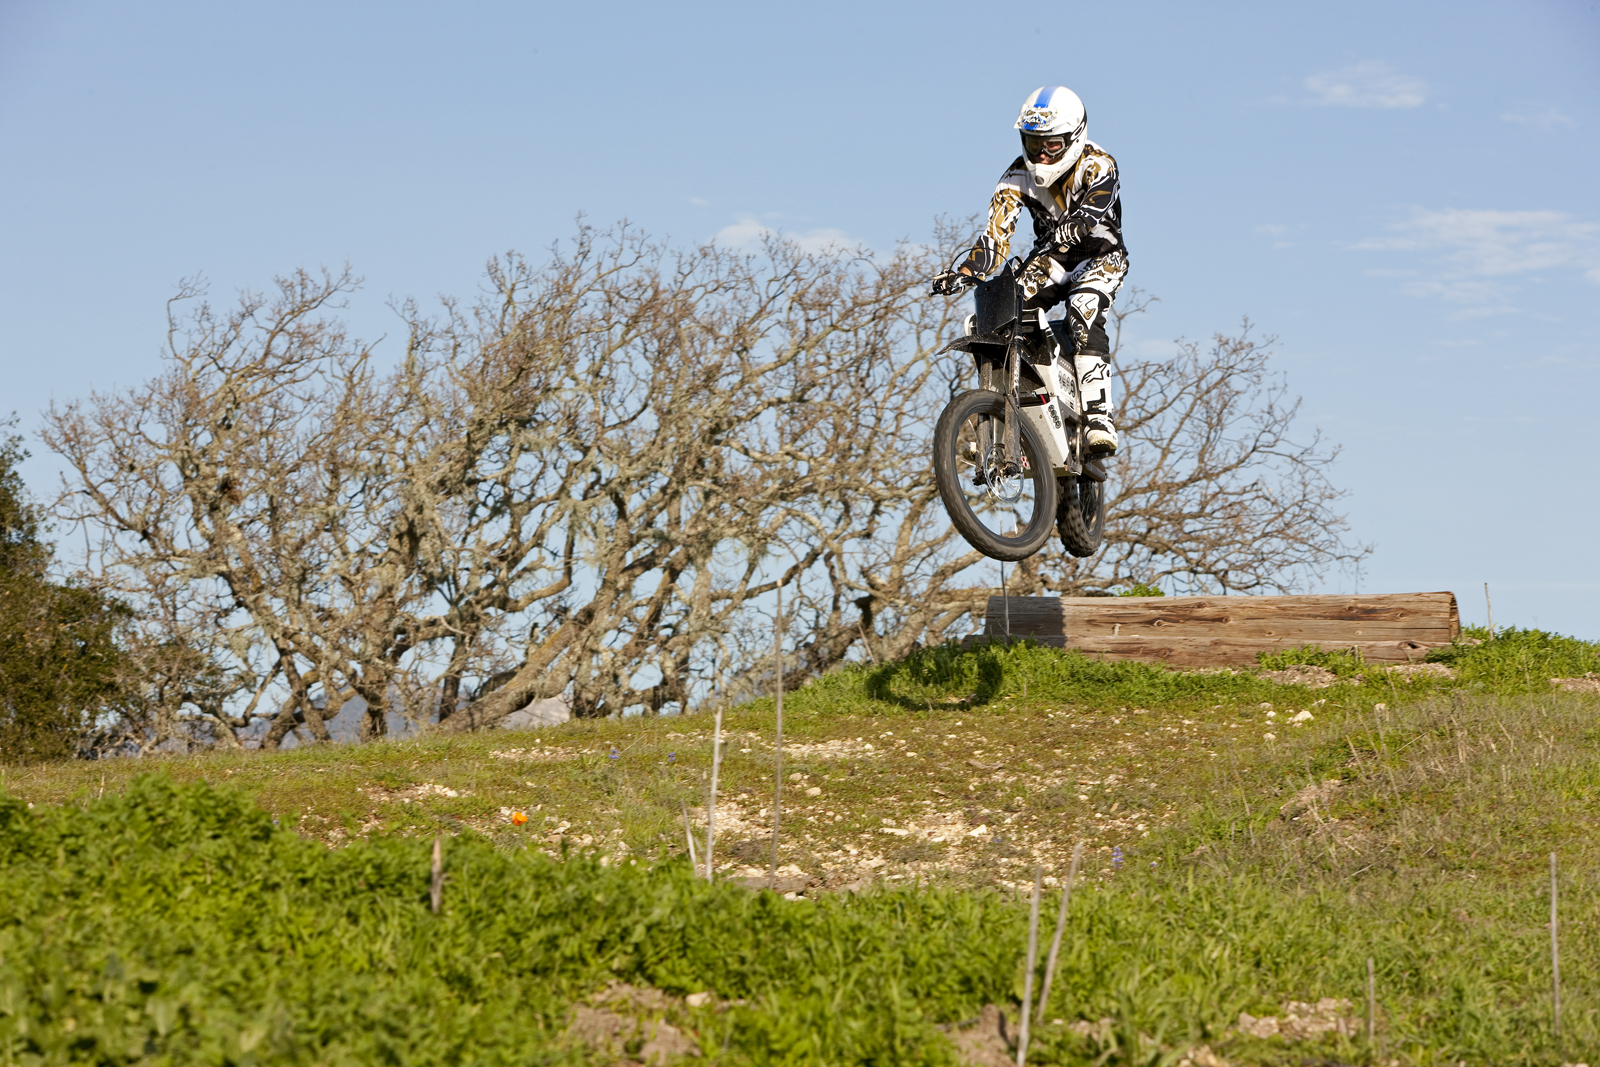 '.2010 Zero X Electric Motorcycle: Zaca Station - Jumps over Log.'